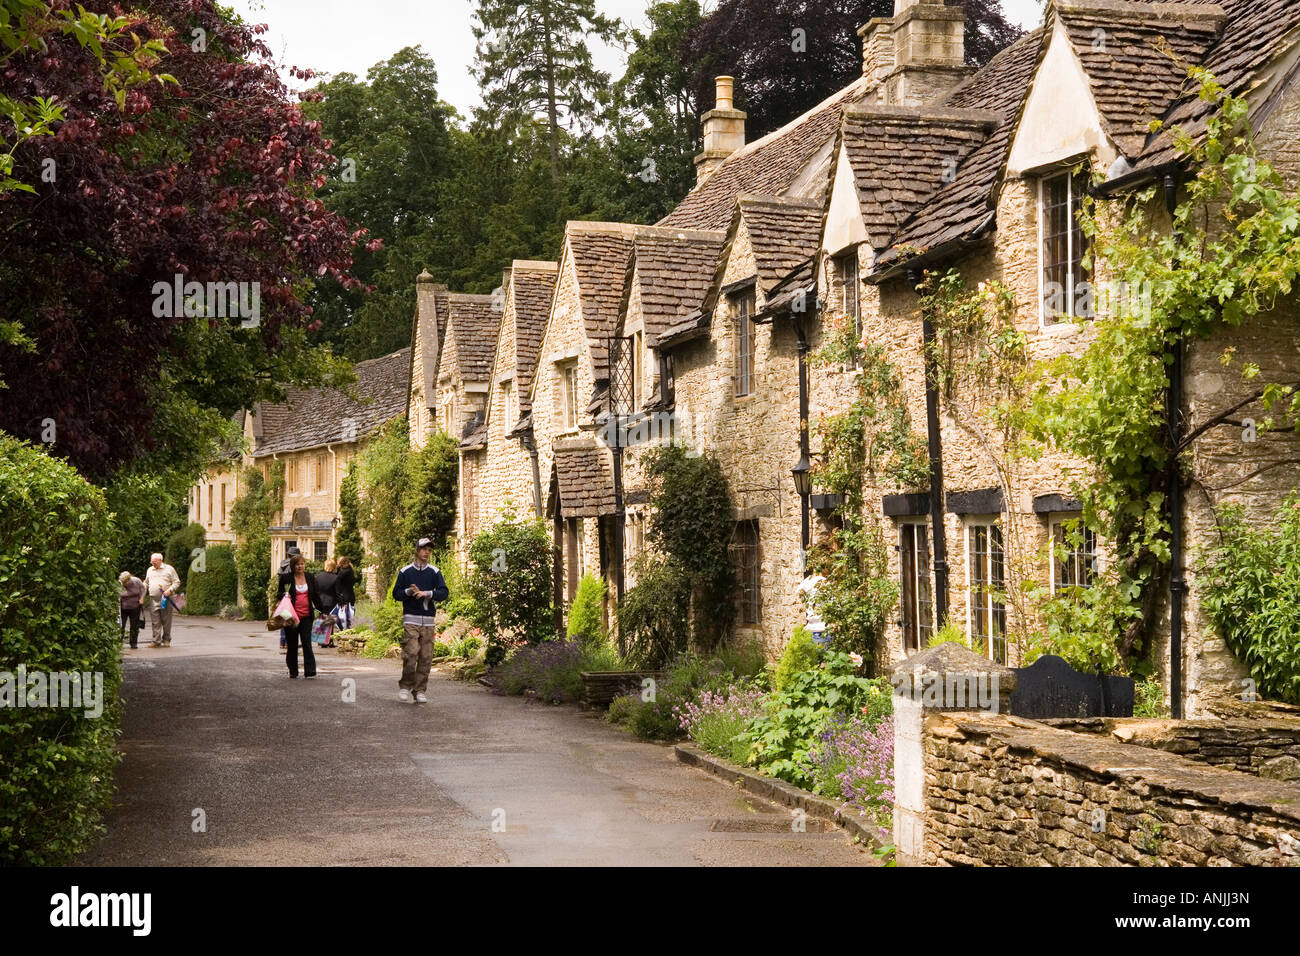 Uk Wiltshire Castle Combe Old Cottages Part Of Manor House Hotel Stock Photo Royalty Free Image